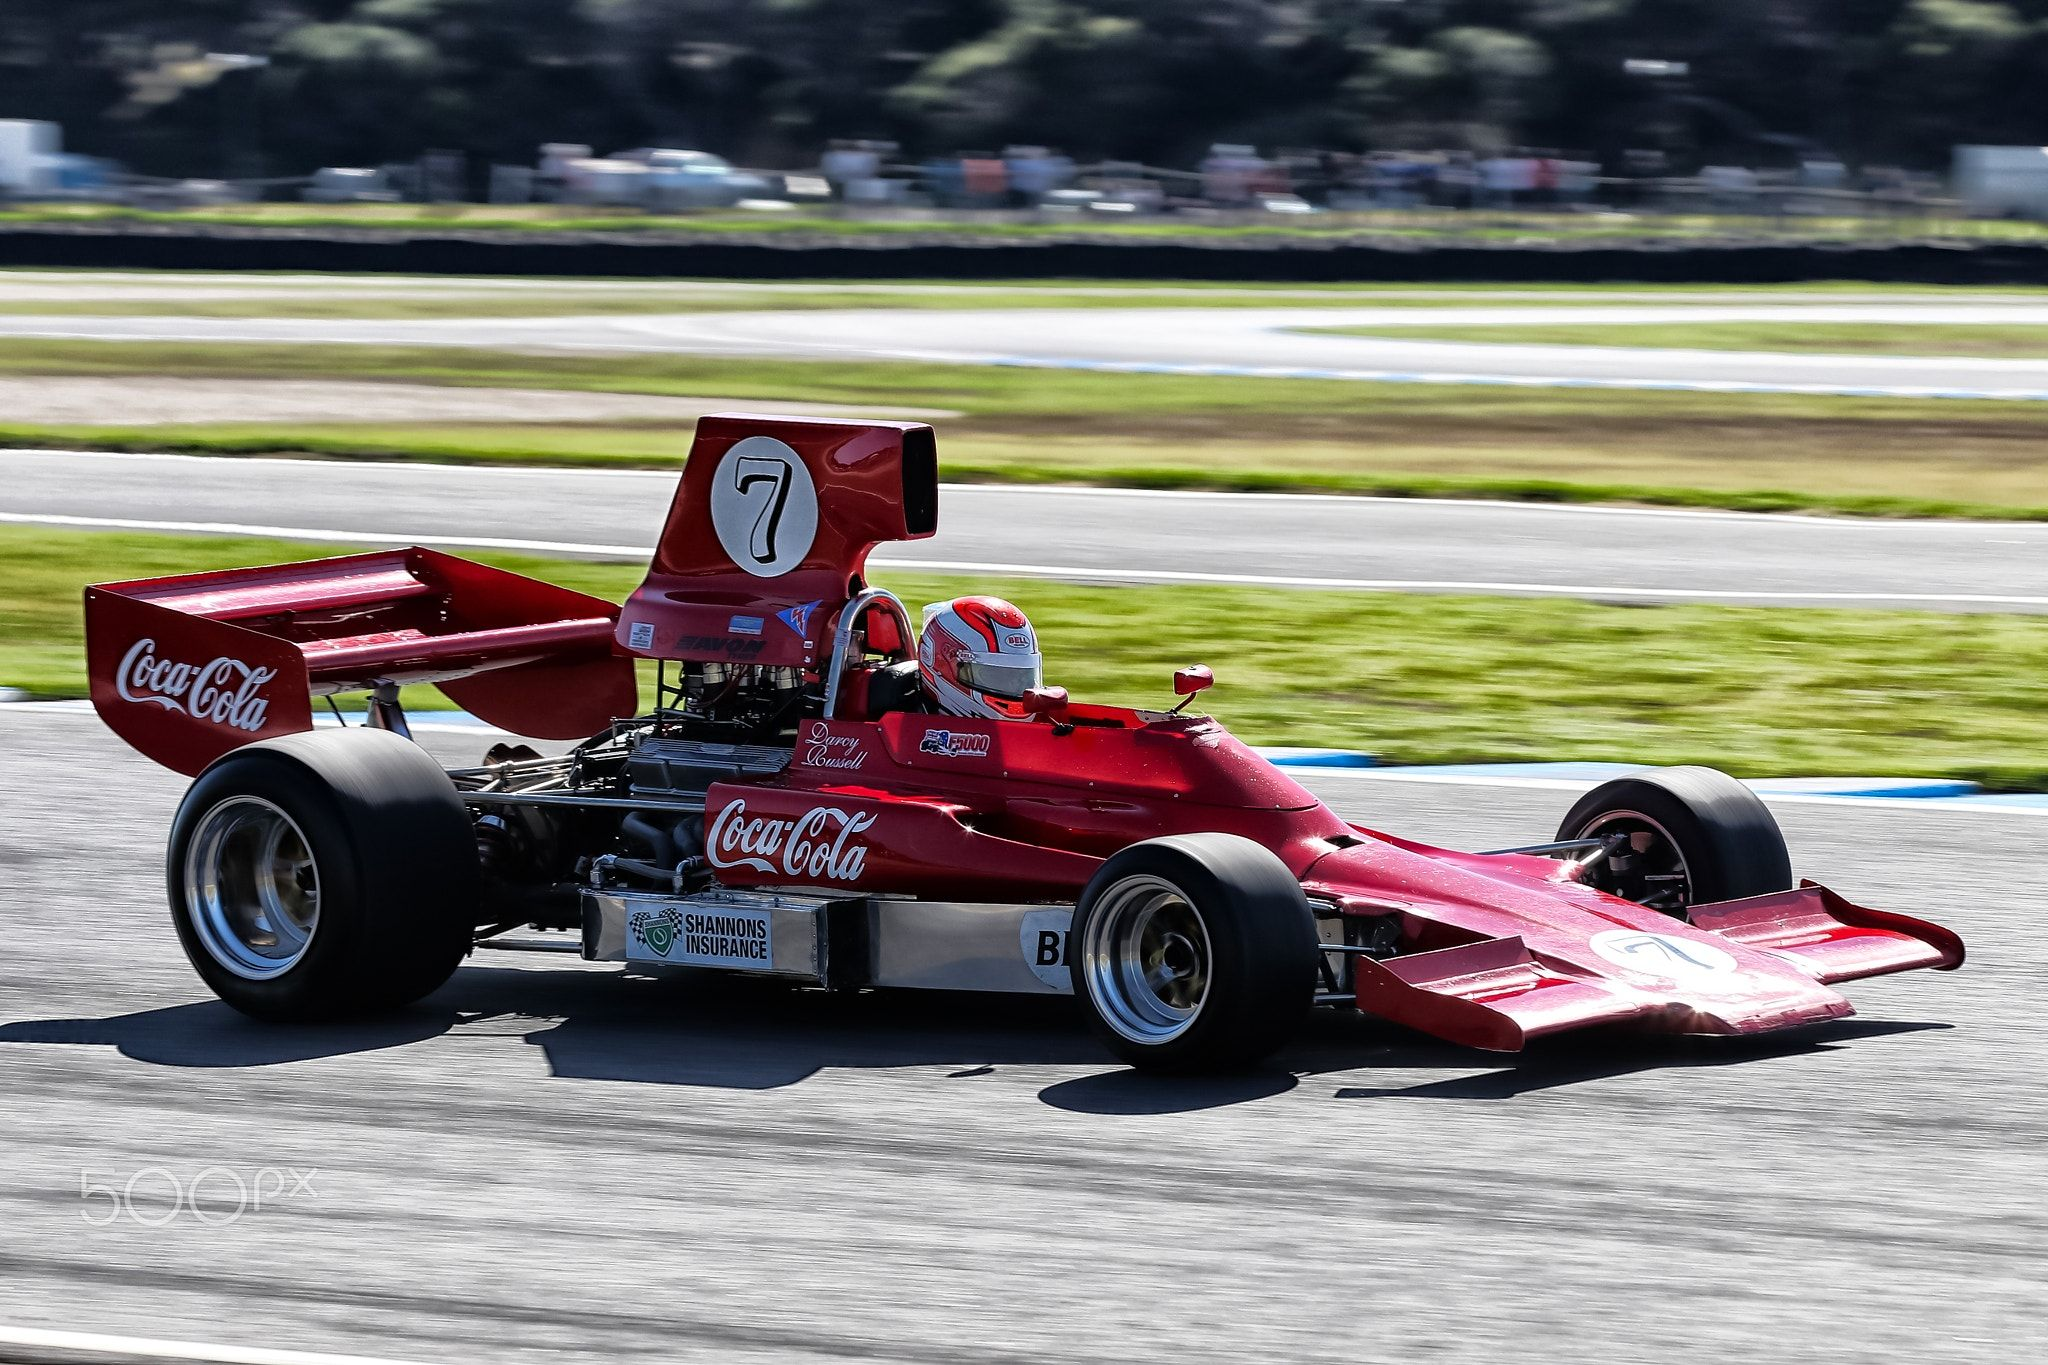 Phillip Island Classic Festival Of Motorsport Darcy Russell Lola T330 Formula 5000 Classic Racing Cars Motorsport Historic Racing